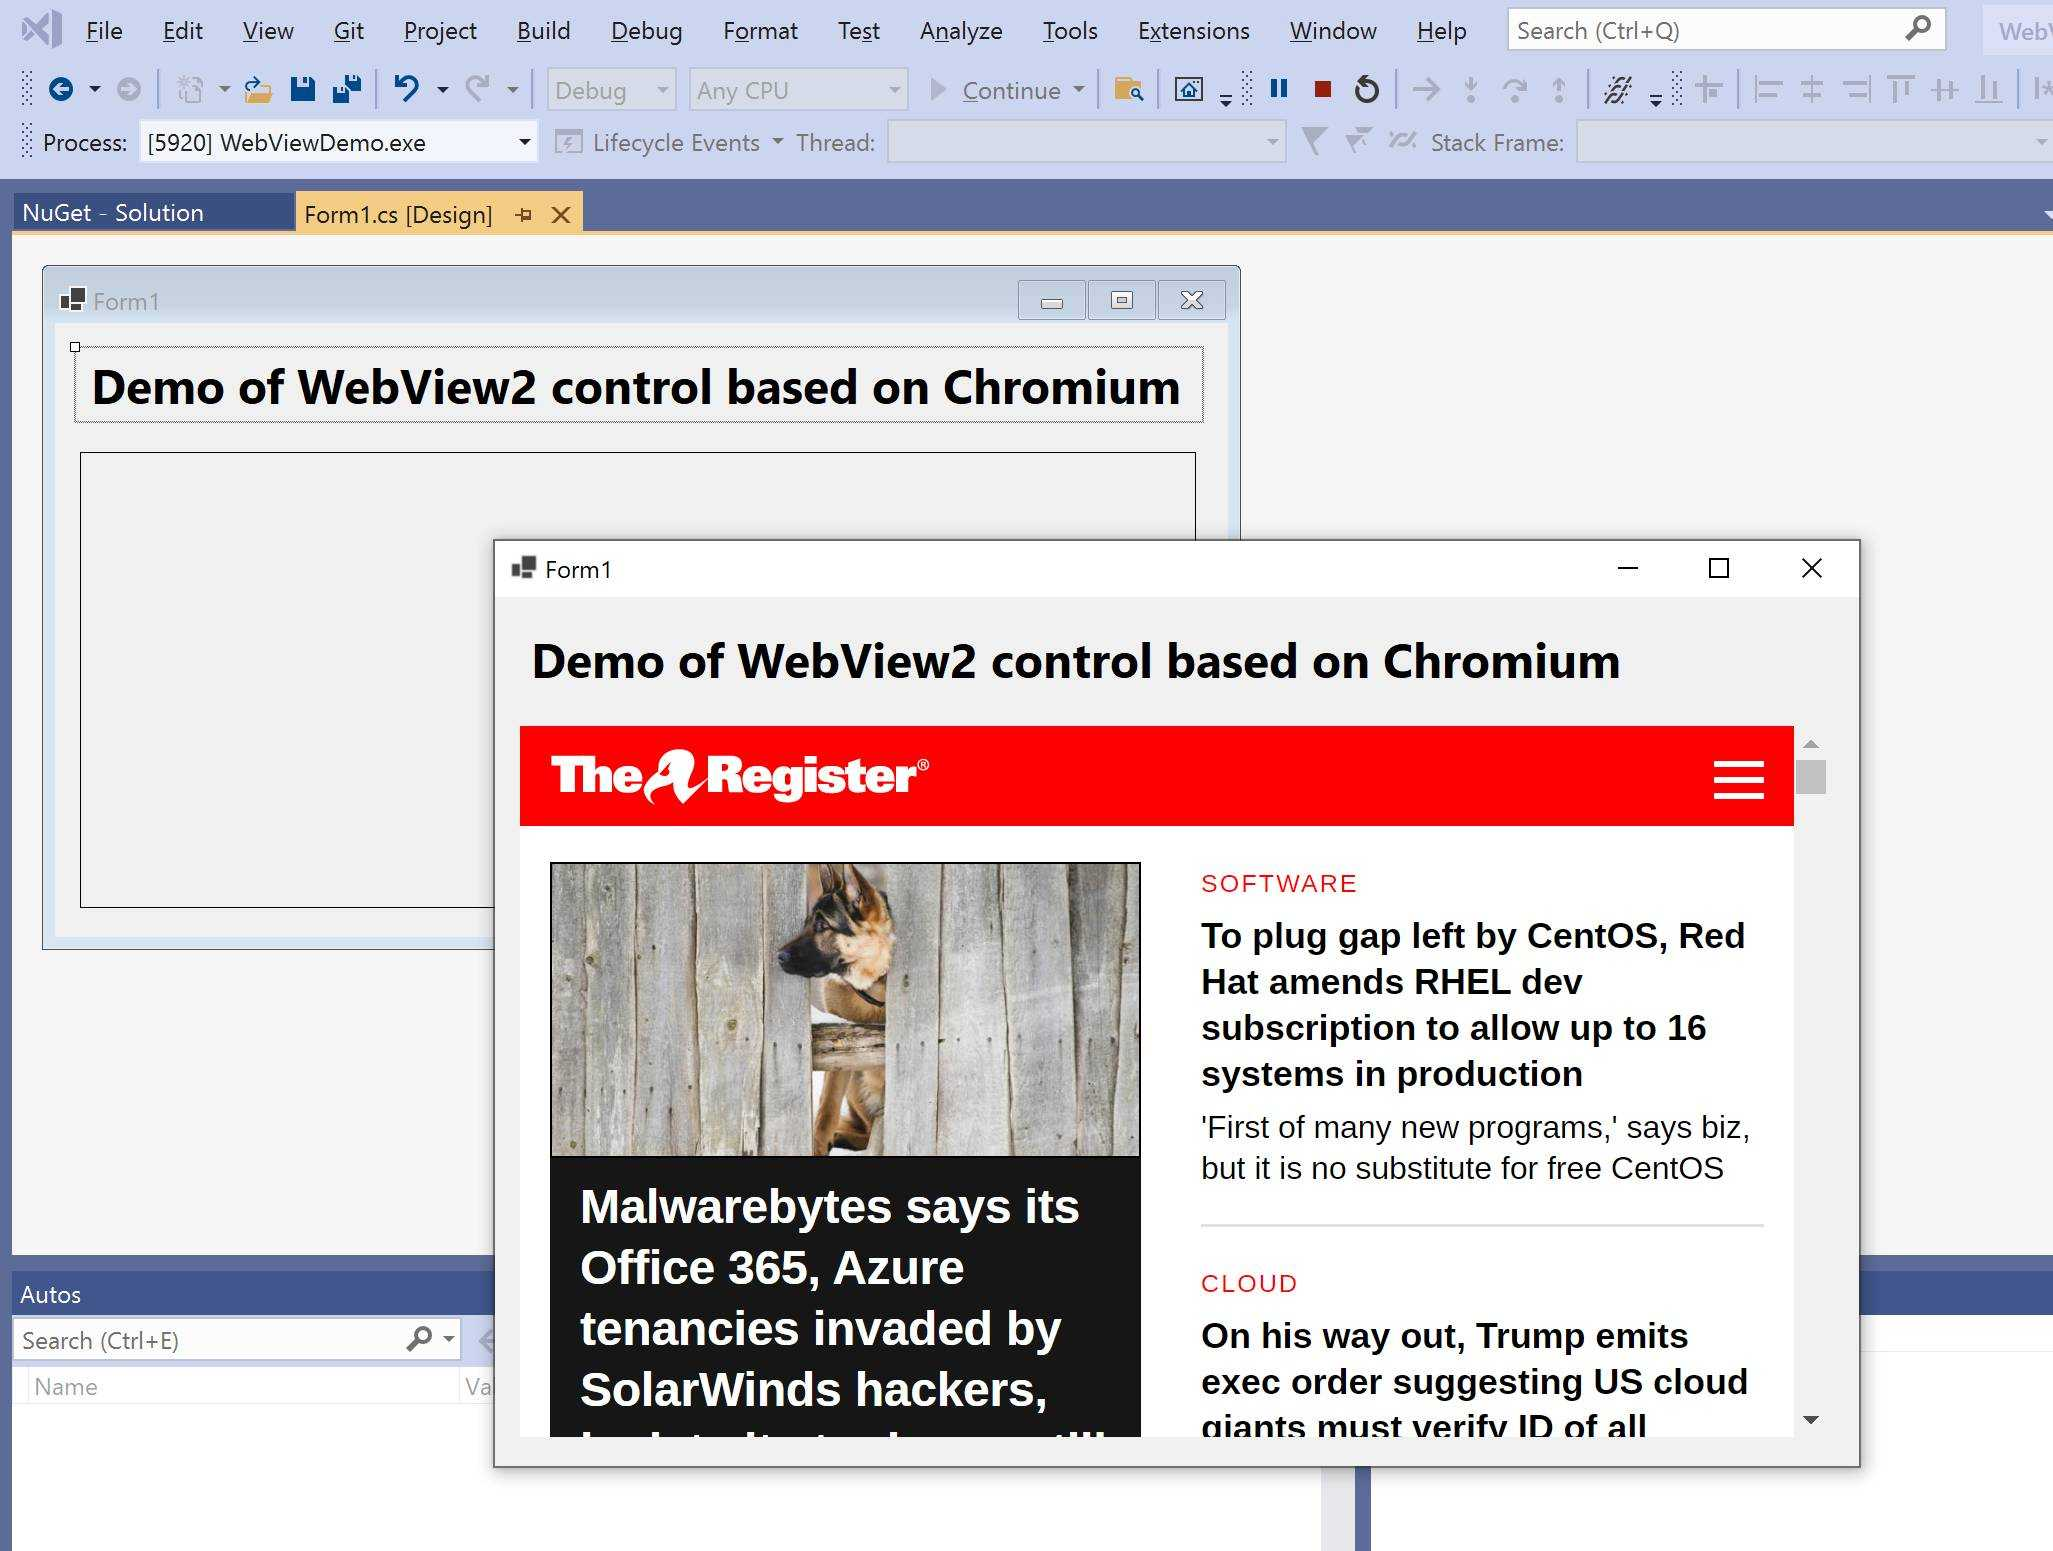 Chromium-based WebView2 has improved debugging support in the latest Visual Studio preview.